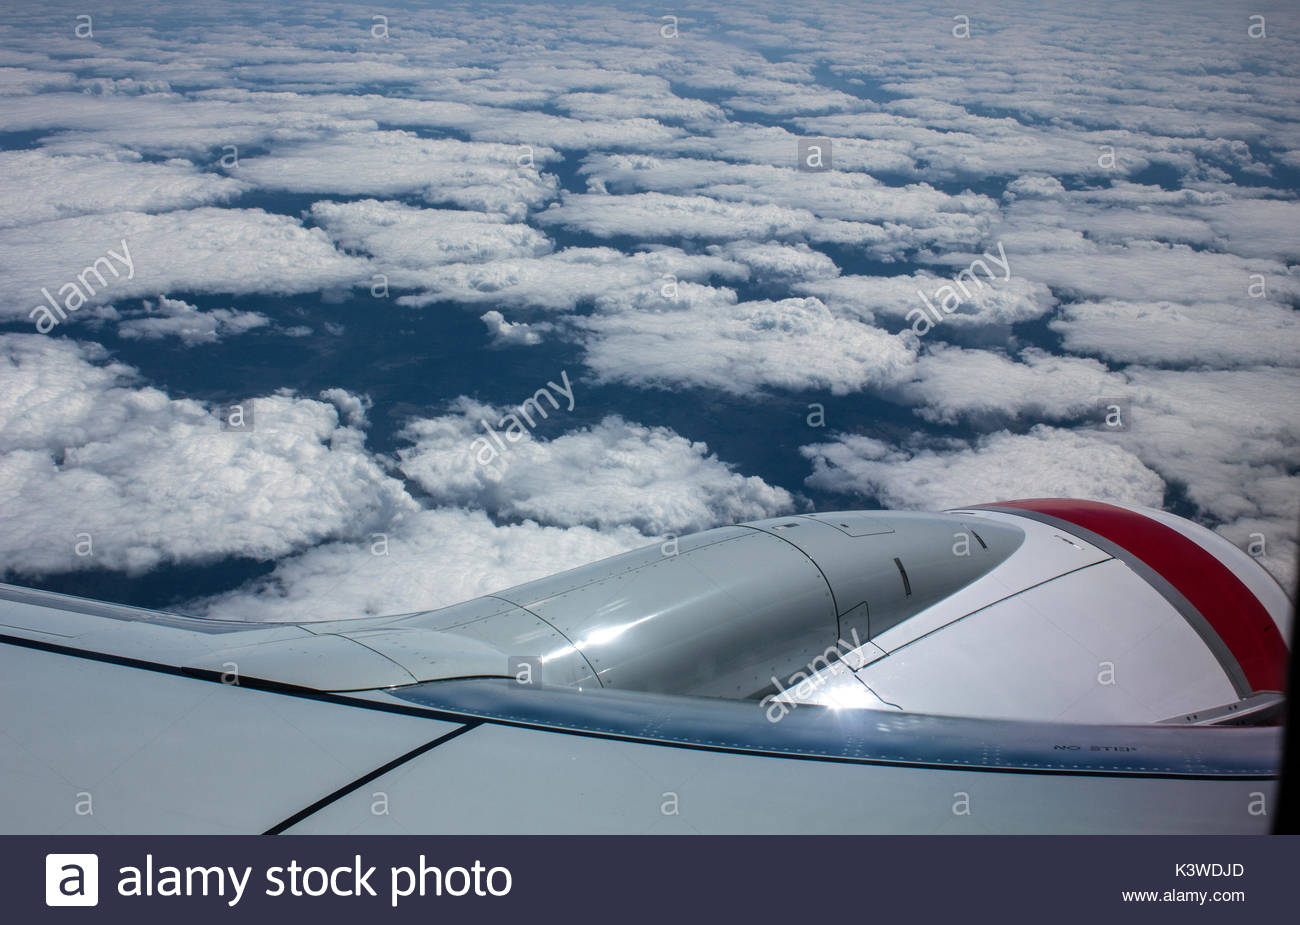 View from the window of a commercial airliner flying above clouds. - Stock Image